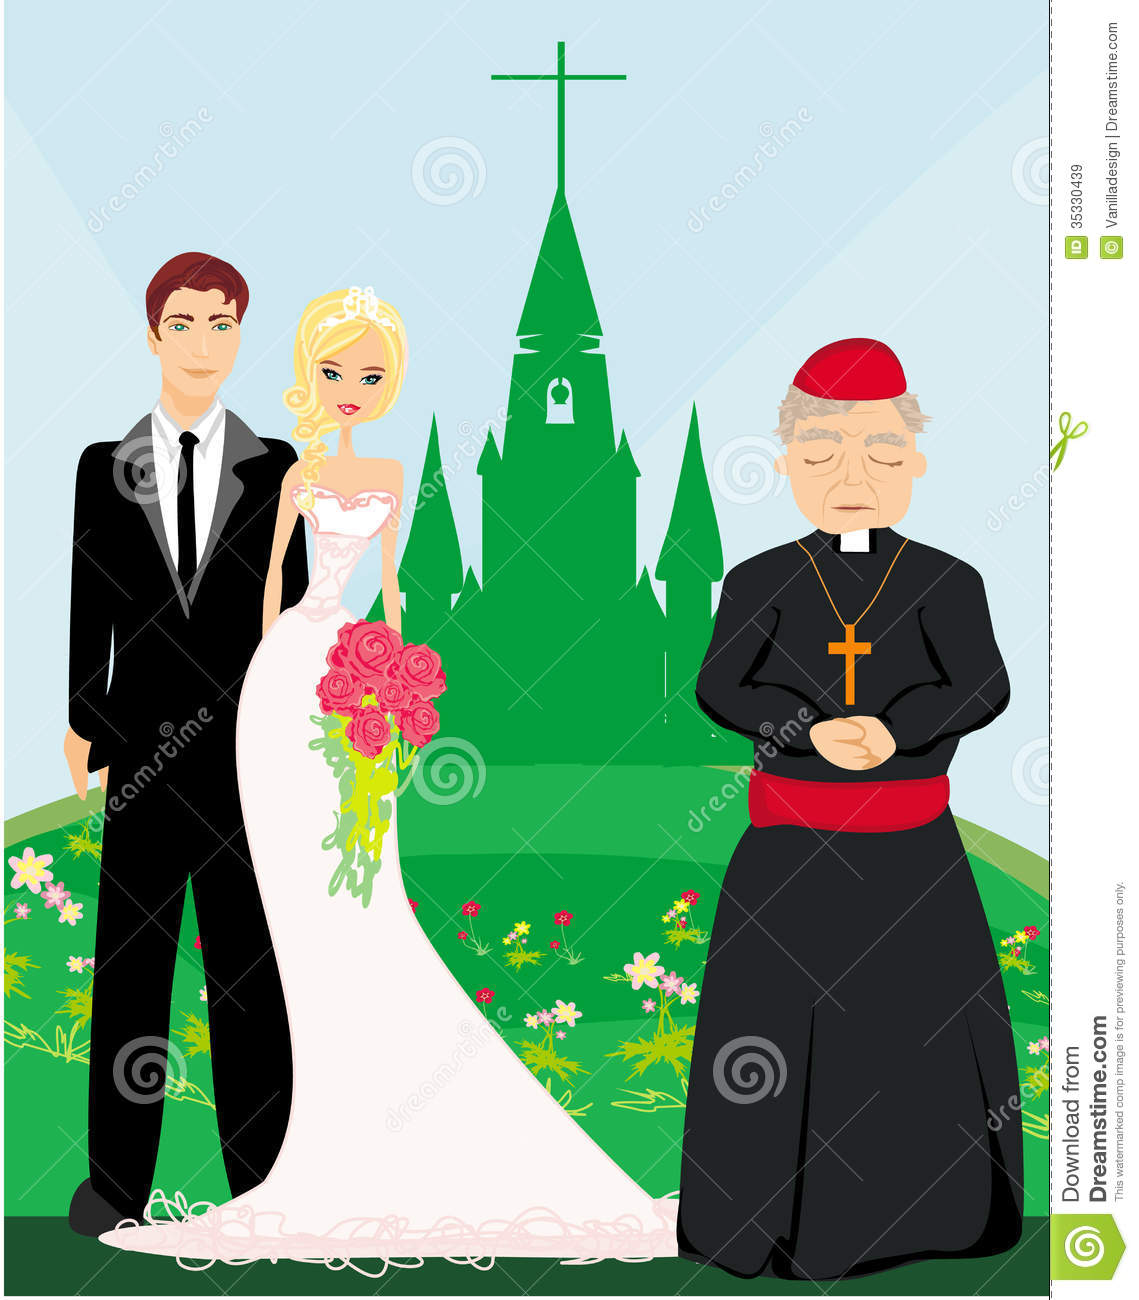 Wedding Couple And The Priest In Front Of A Church Royalty Free Stock ...